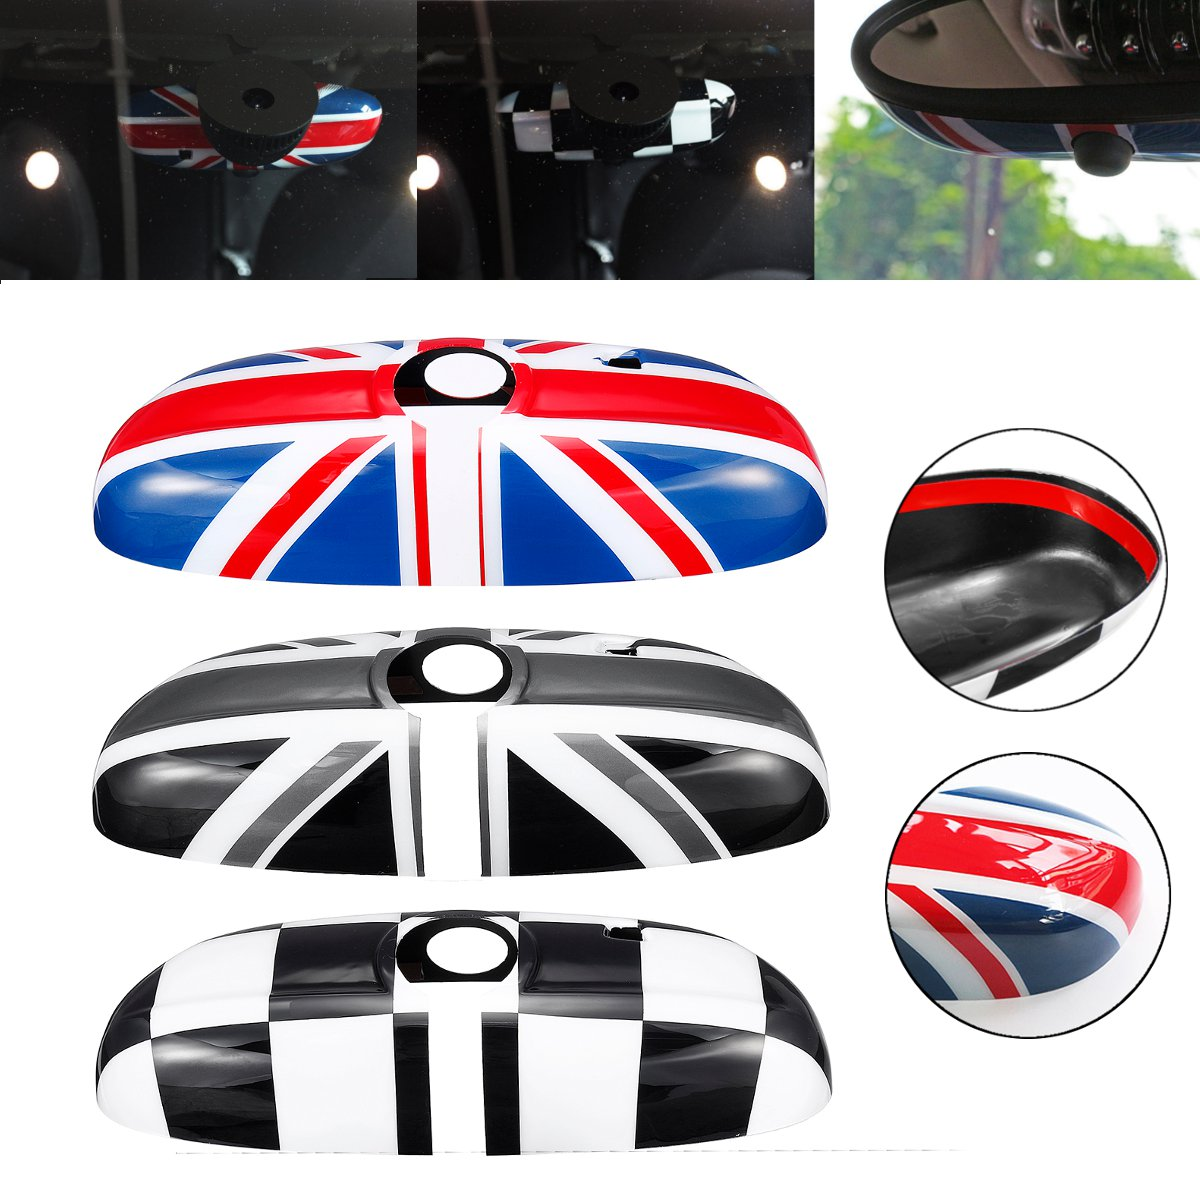 Artudatech 2 x Union Jack WING Mirror Covers for MINI Cooper R55 R56 R60 Power Fold Mirror